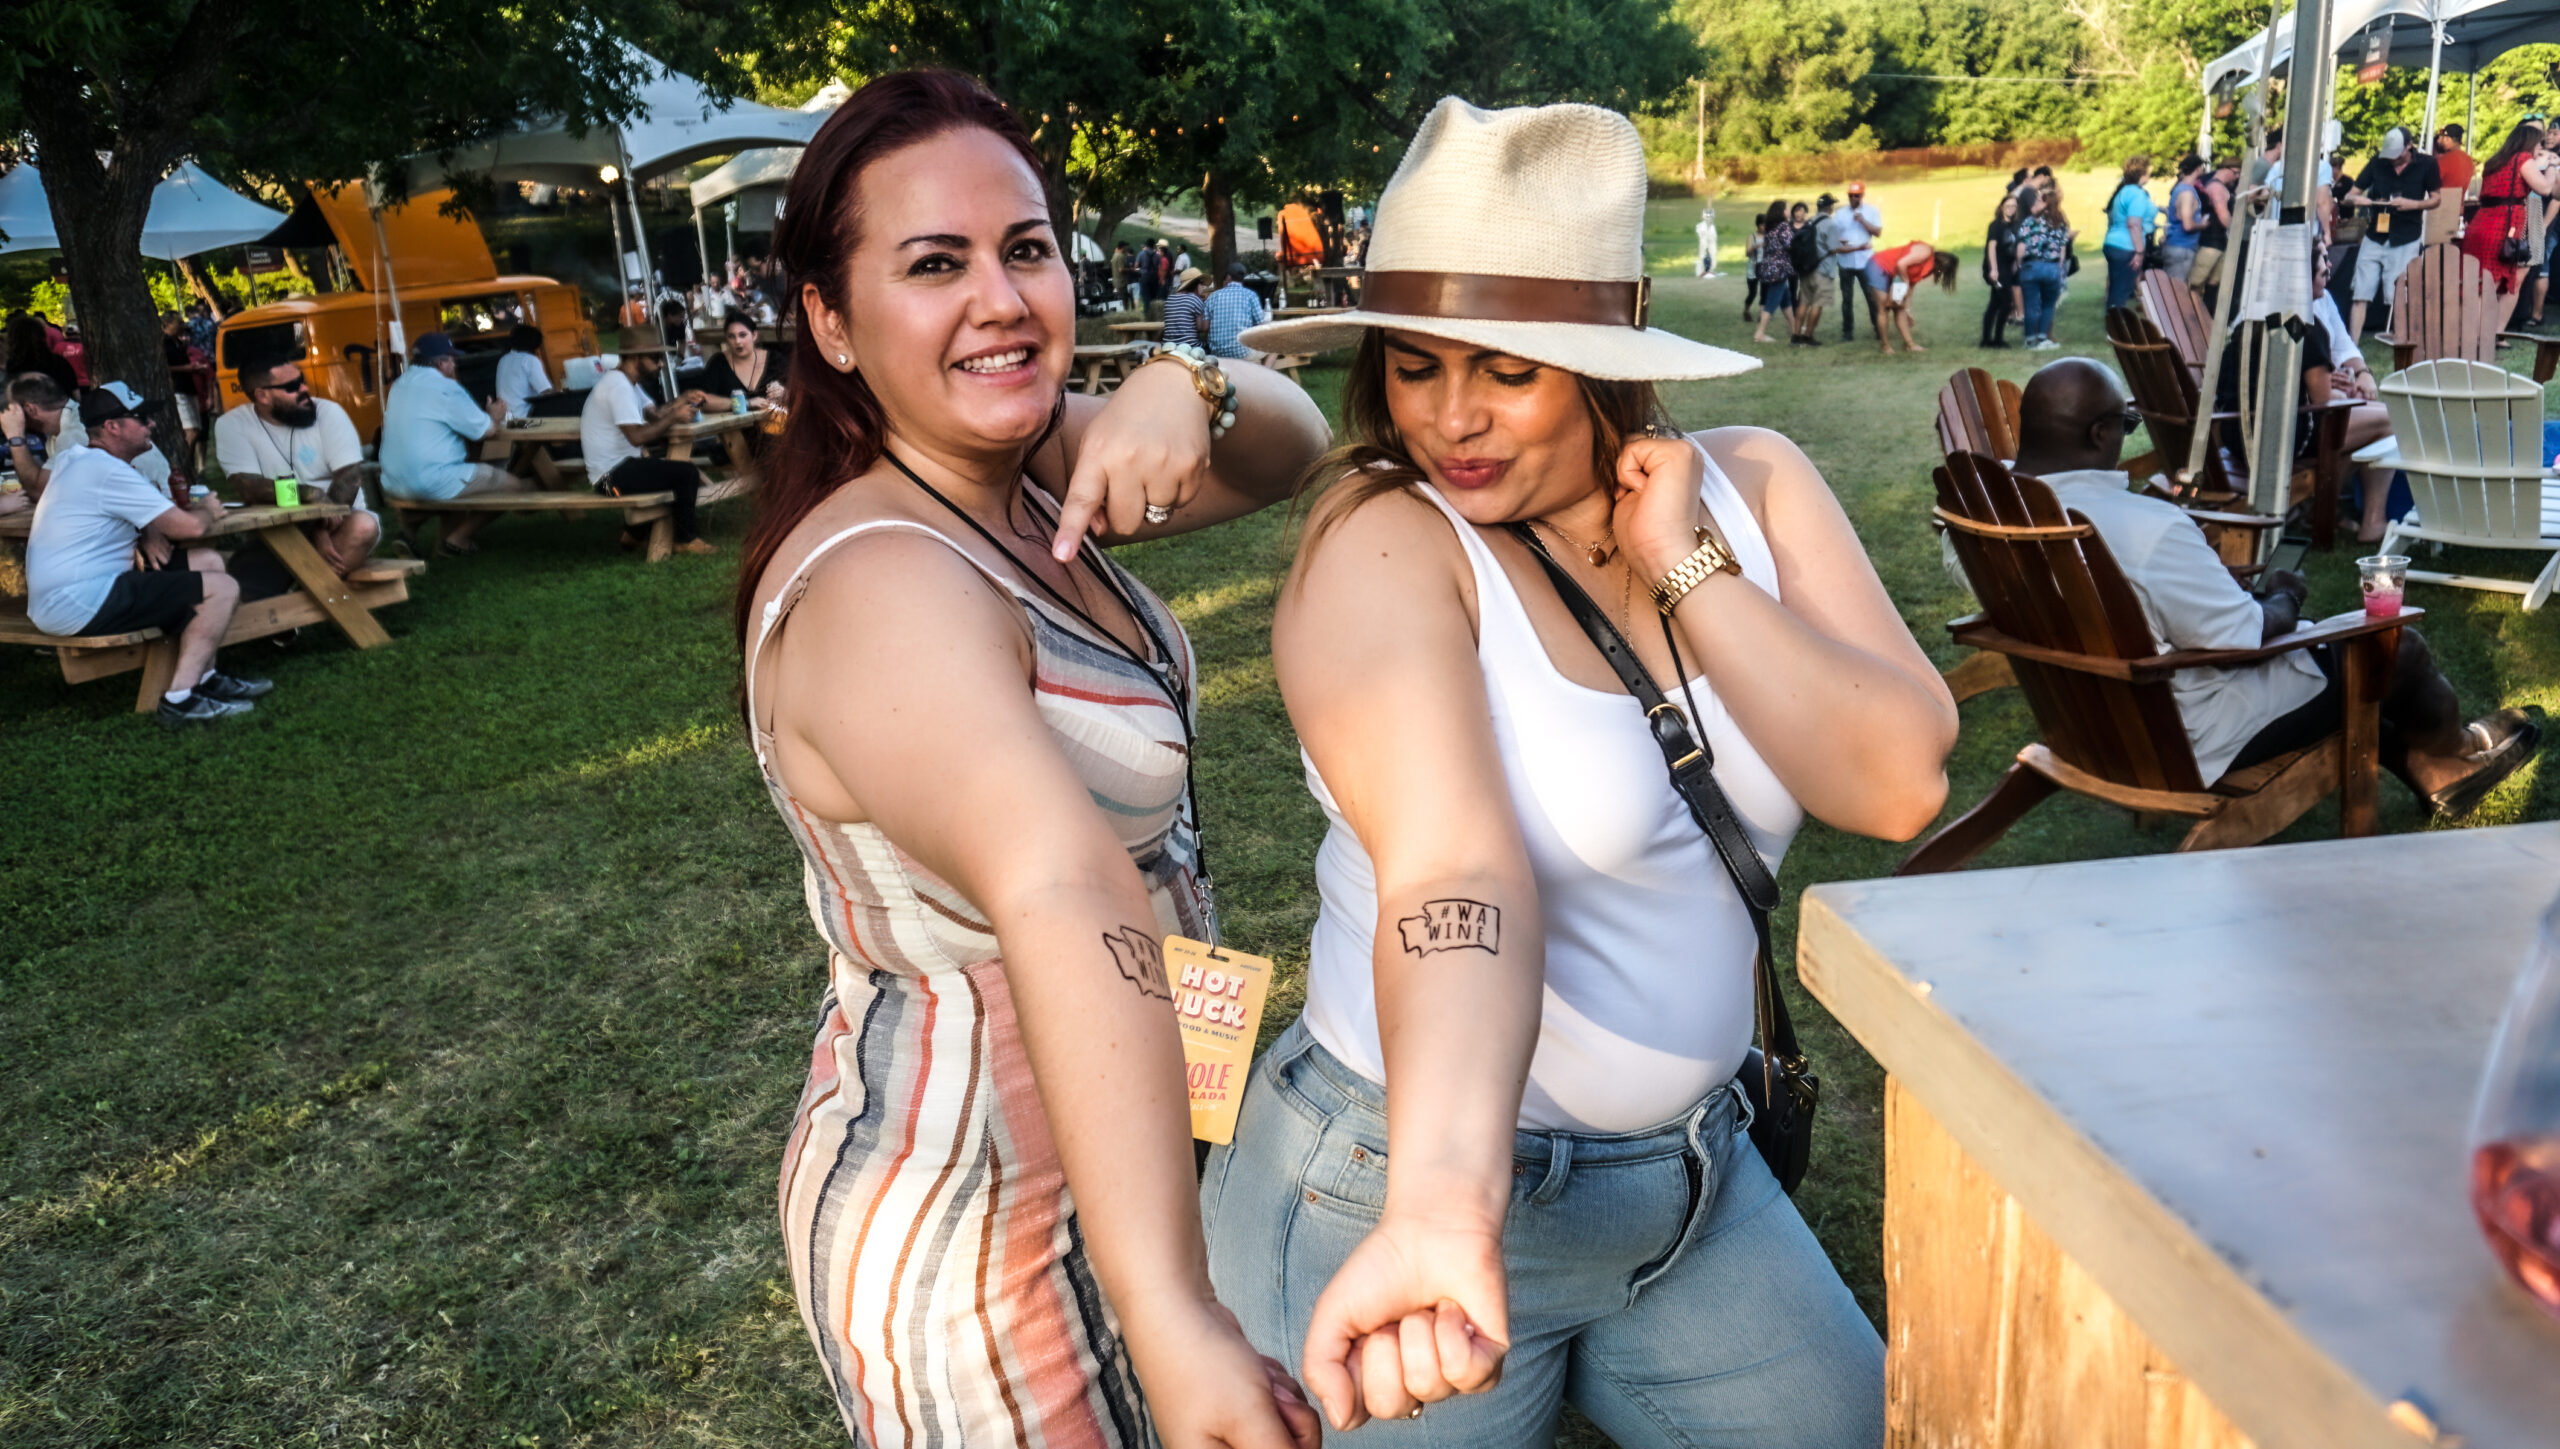 Two women show off their WA Wine temporary tattoos with their arms held out. They are standing on a lawn in front of many other people in chairs and standing.